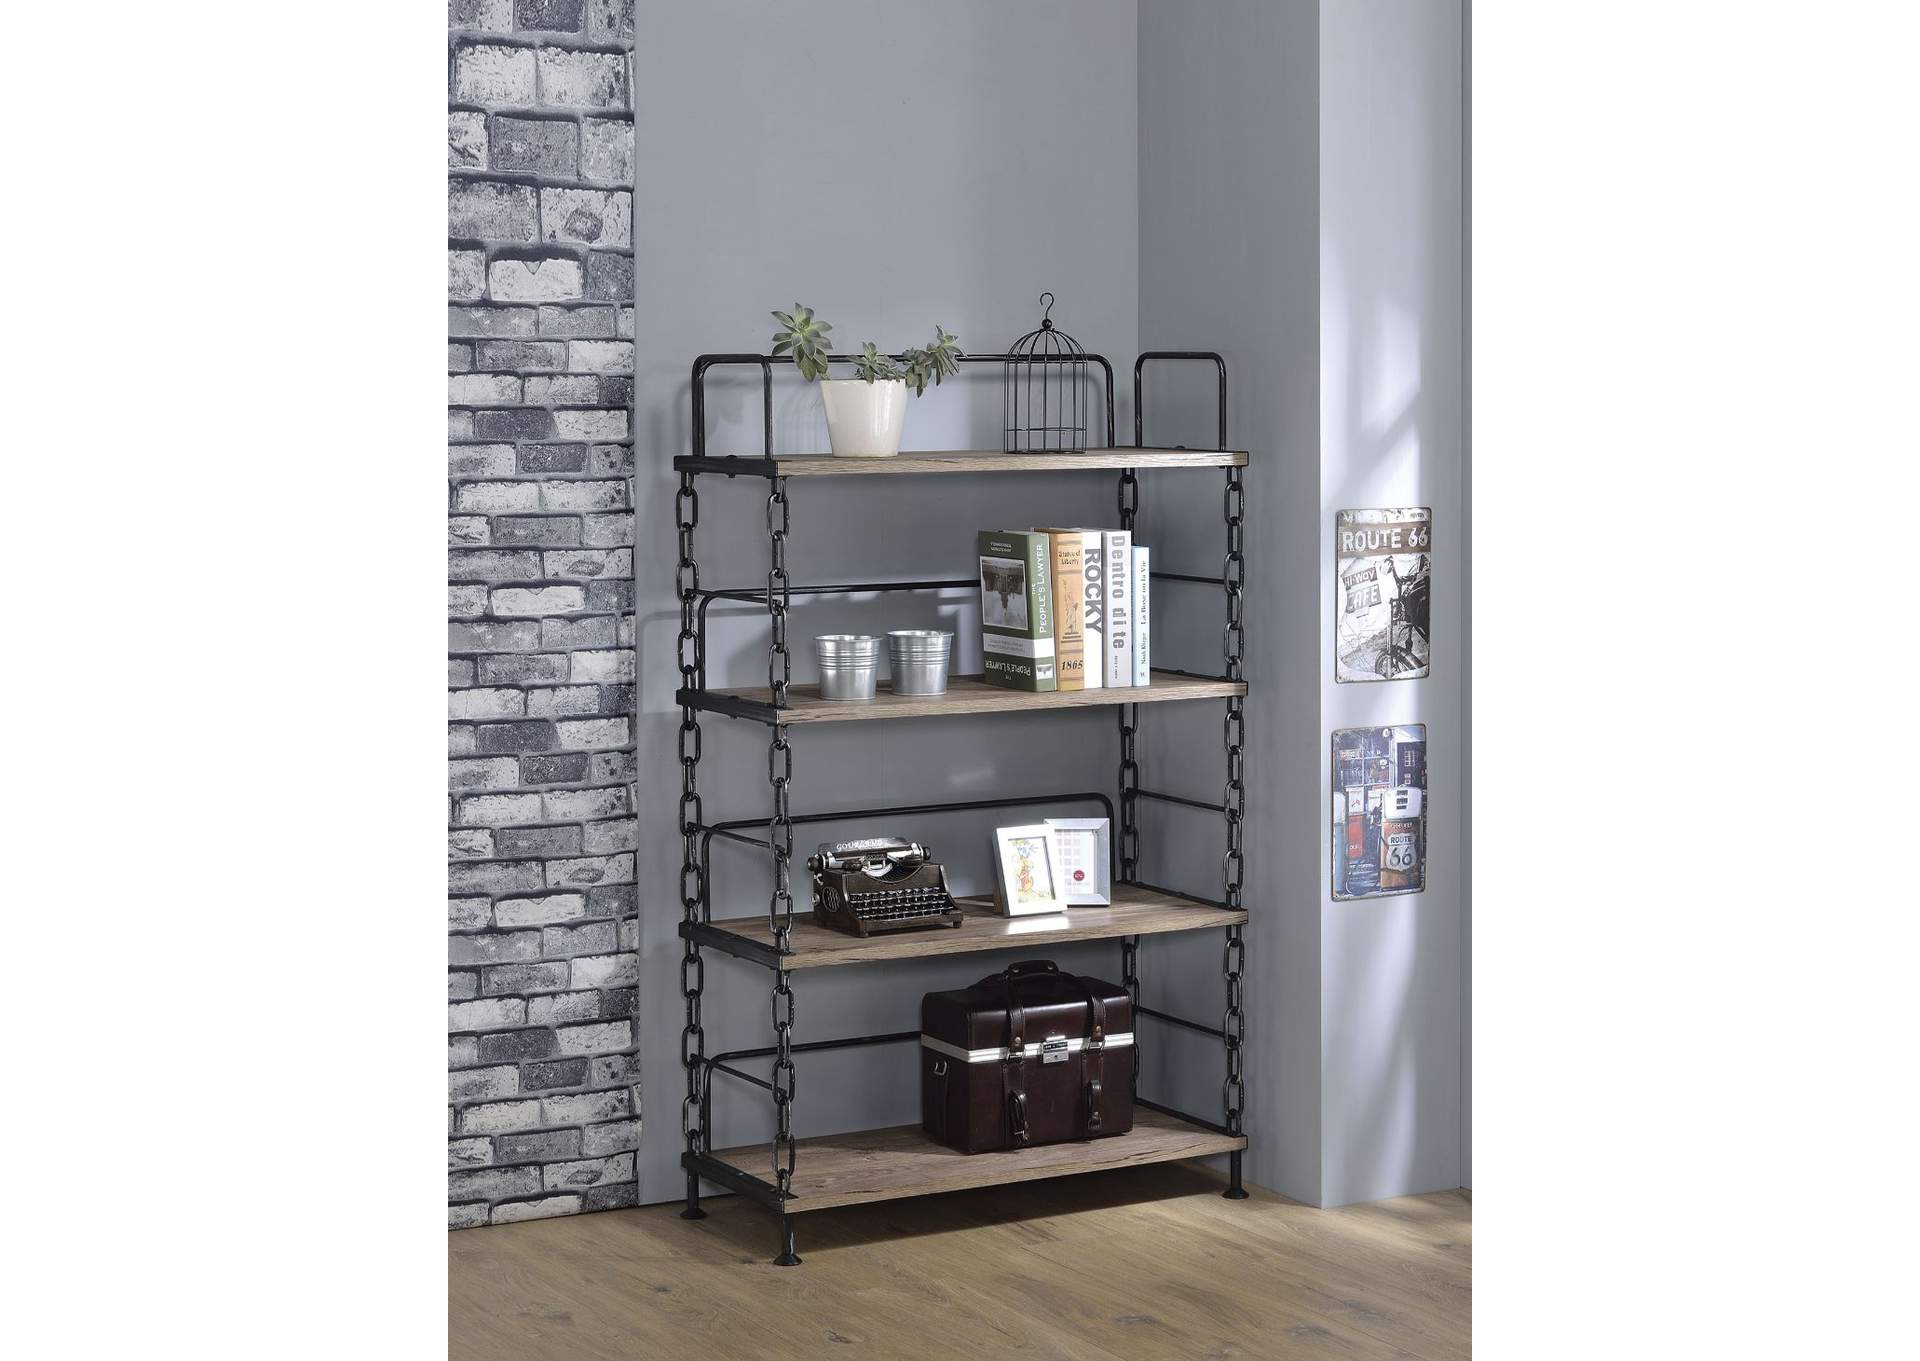 Jodie Rustic Oak/Antique Black Bookshelf,Acme